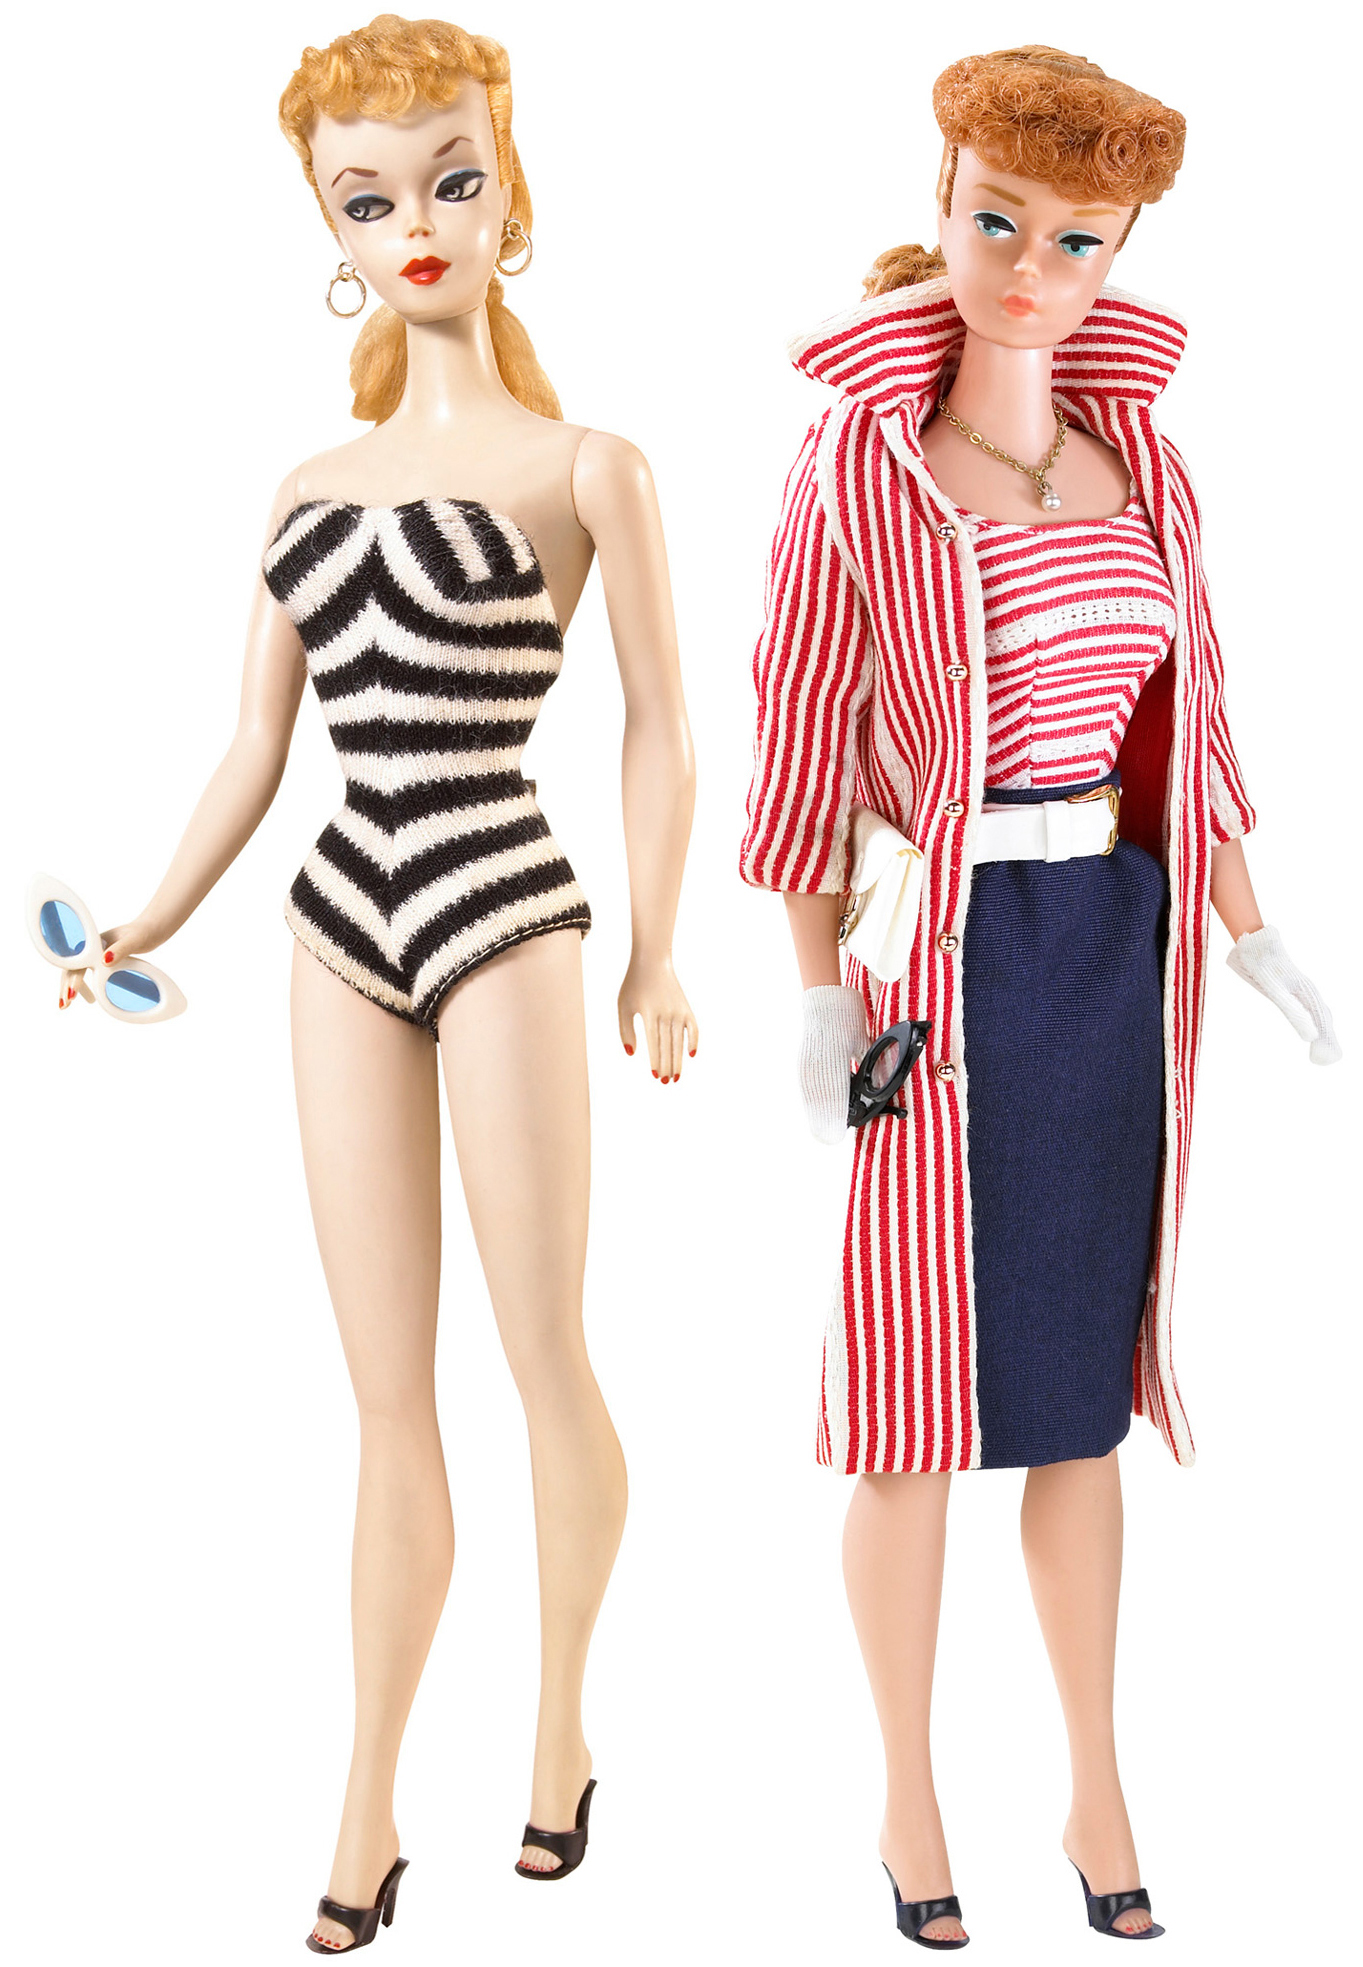 These 1959 Barbies are part of the Grand Rapids Public Museum Toys! exhibit.